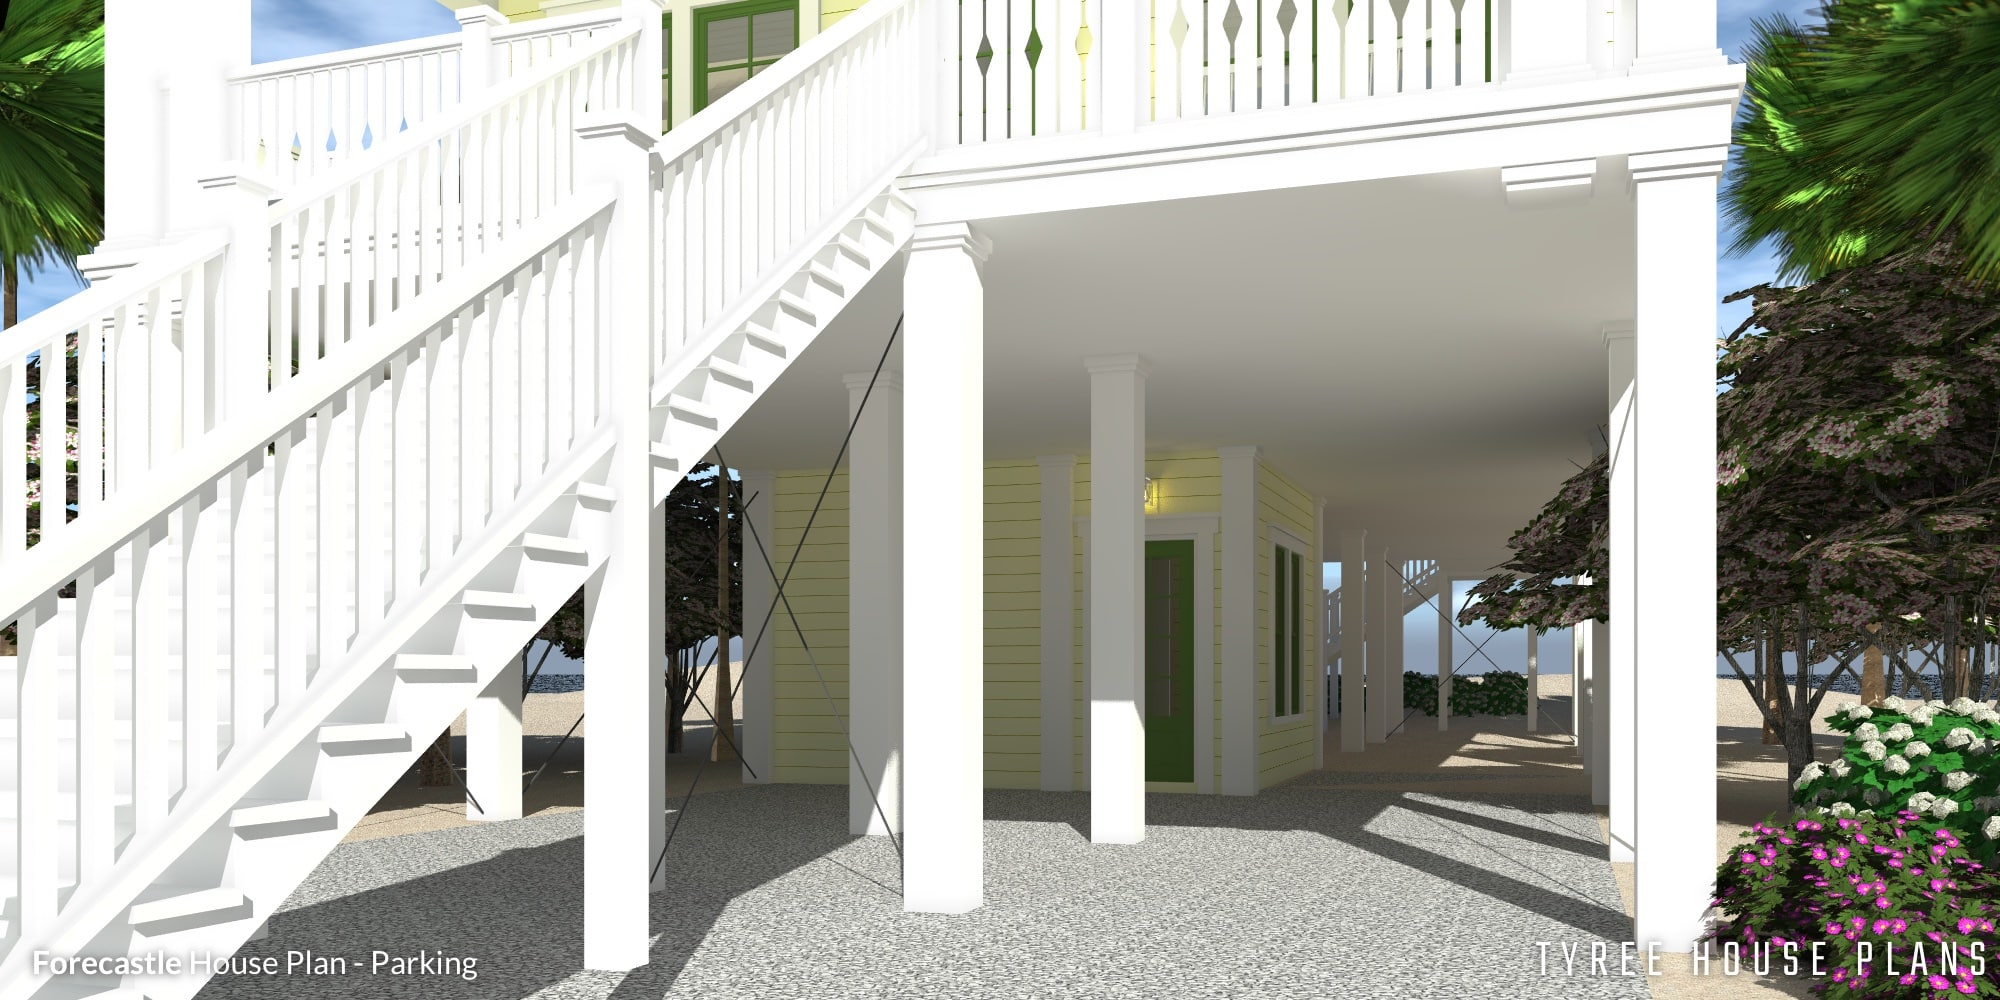 Parking - Forecastle House Plan by Tyree House Plans